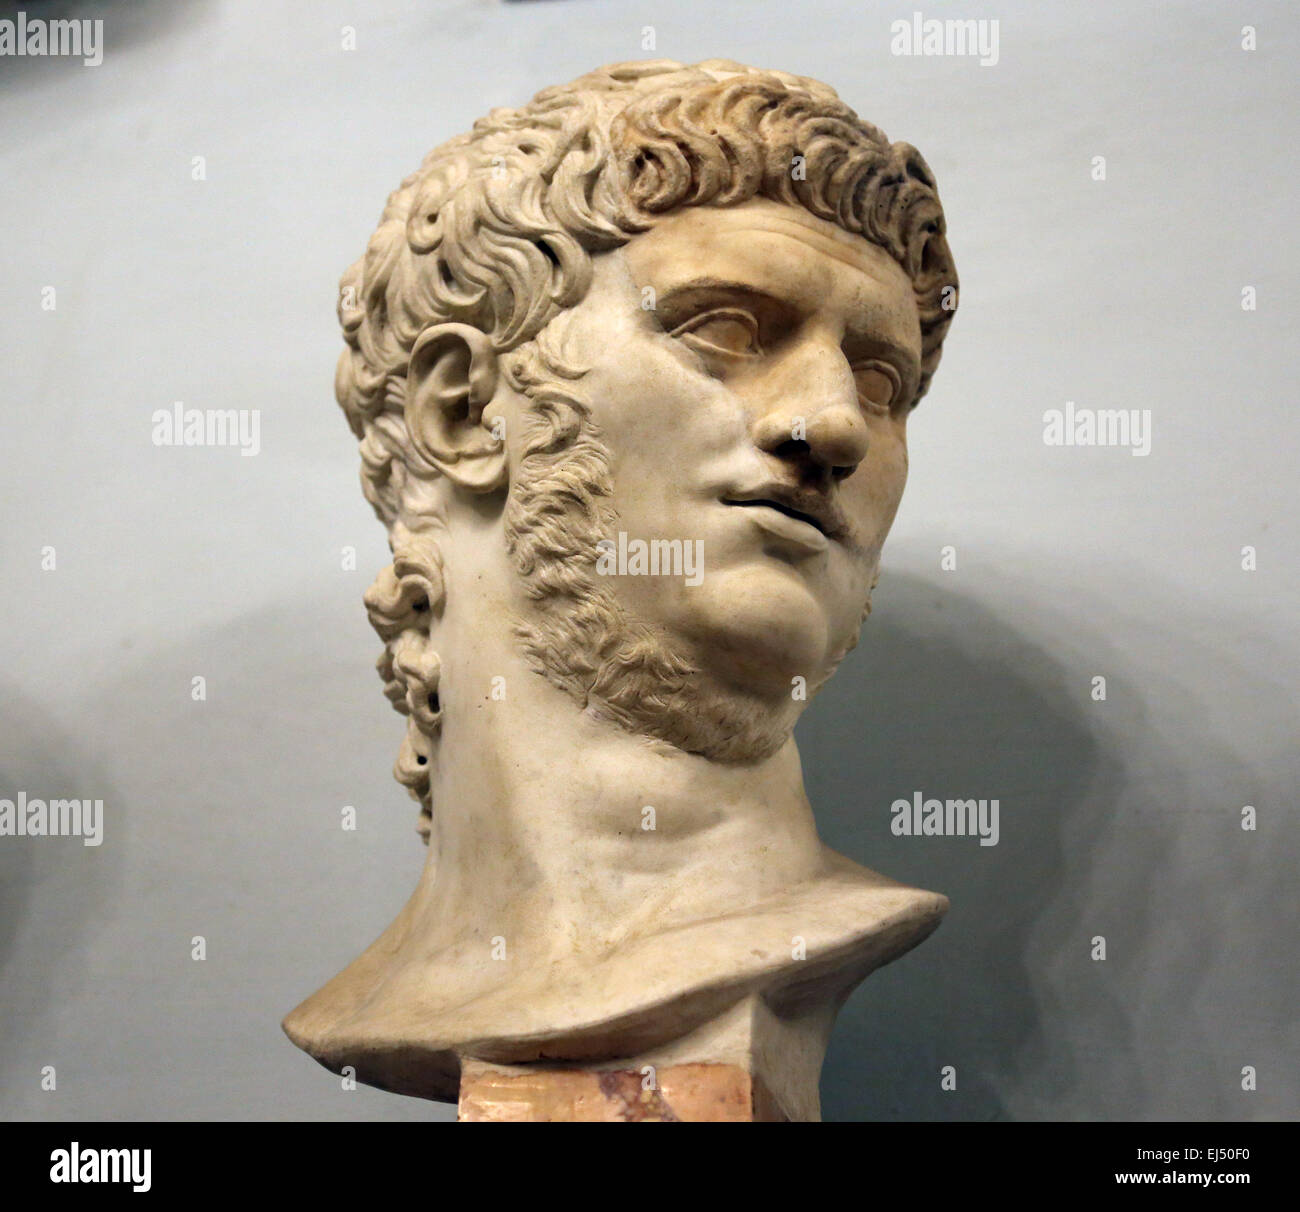 Bust of roman emperor Nero(37-68 AD) at the Capitoline Museums. Rome. Italy. - Stock Image